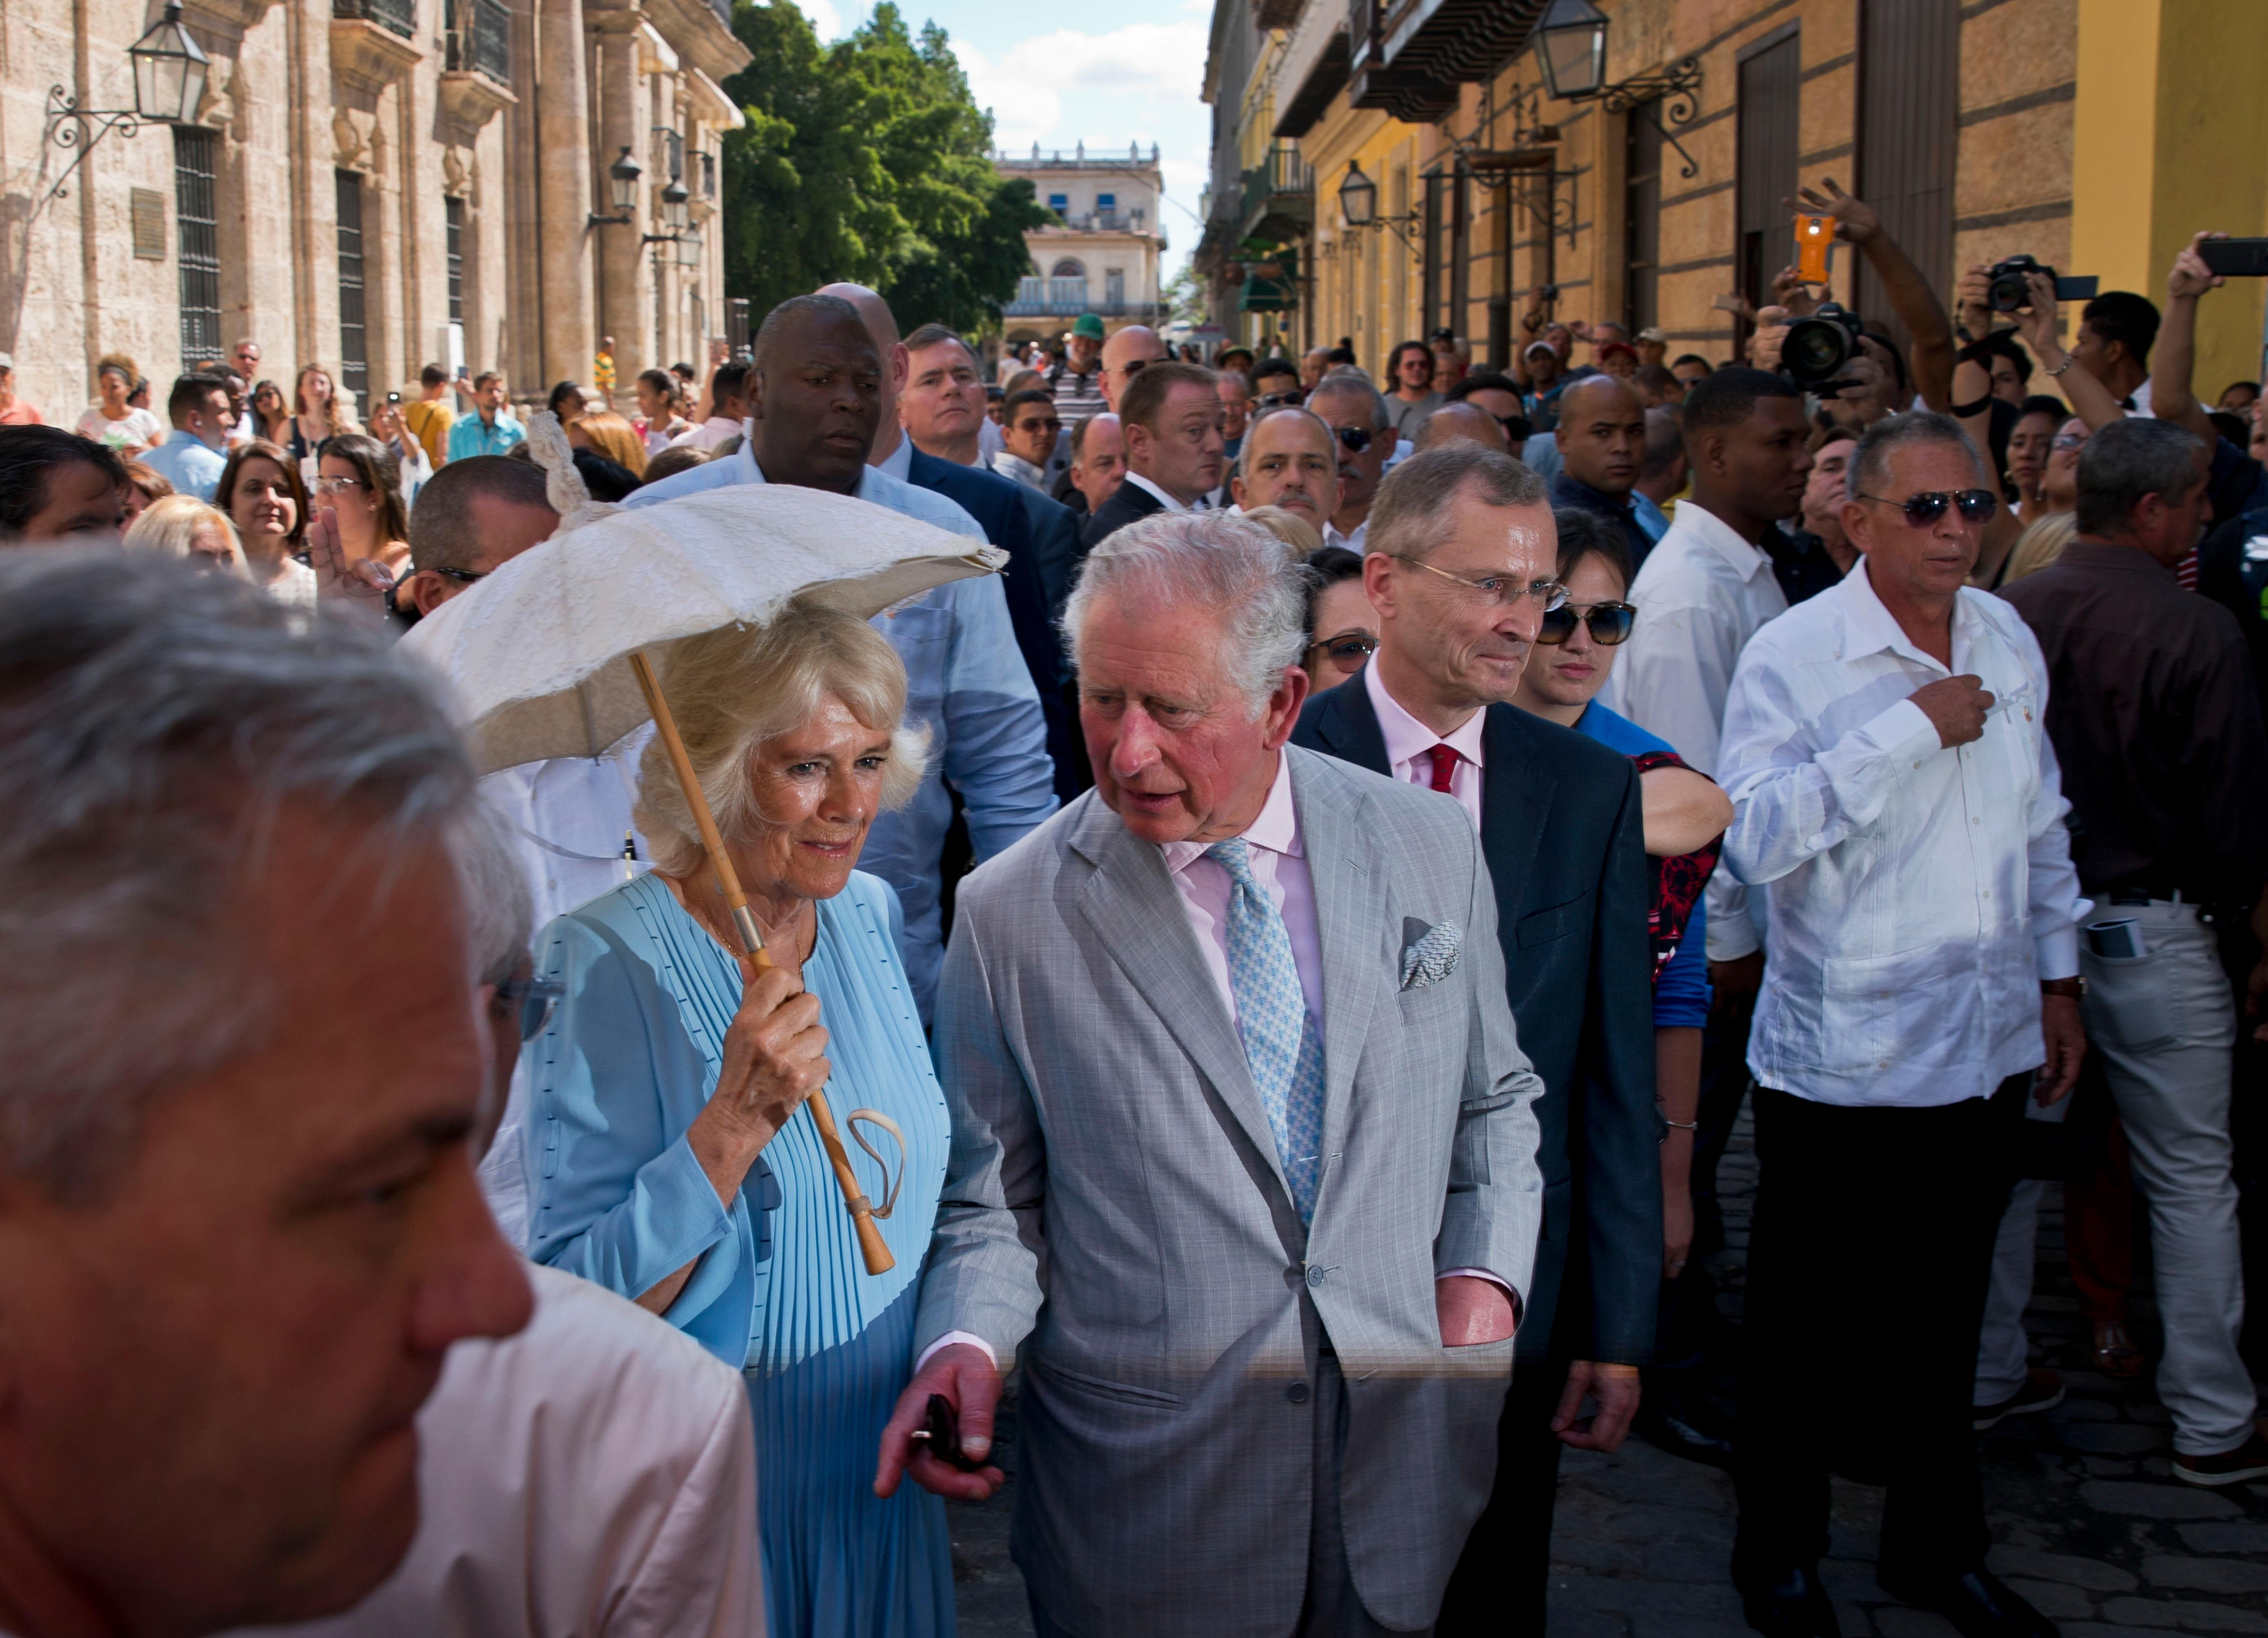 Britain's Prince Charles, the Prince of Wales, center, and his wife Camilla, Duchess of Cornwall, take a guided tour of the historical area of Havana, Cuba, Monday, March 25, 2019. The royal couple began the first official trip to Cuba by the British royal family on Sunday, in a pomp-filled display of disagreement with the Trump administration's strategy of economically isolating the communist island. (AP Photo/Ramon Espinosa)